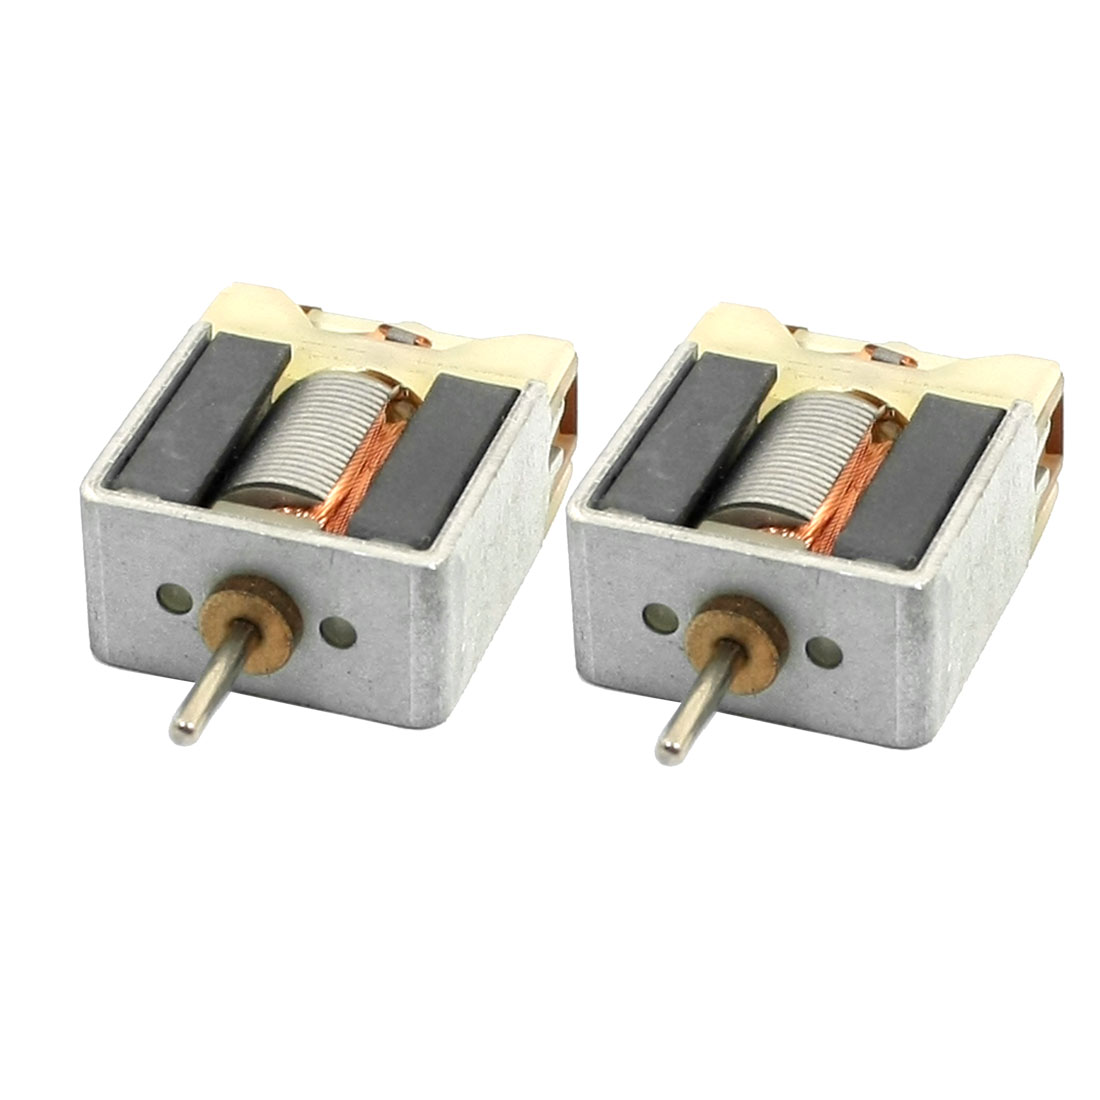 2PCS-22x18x10mm-DC6V-15000RPM-Bare-Magnetic-Carbon-Brush-Micro-Motor